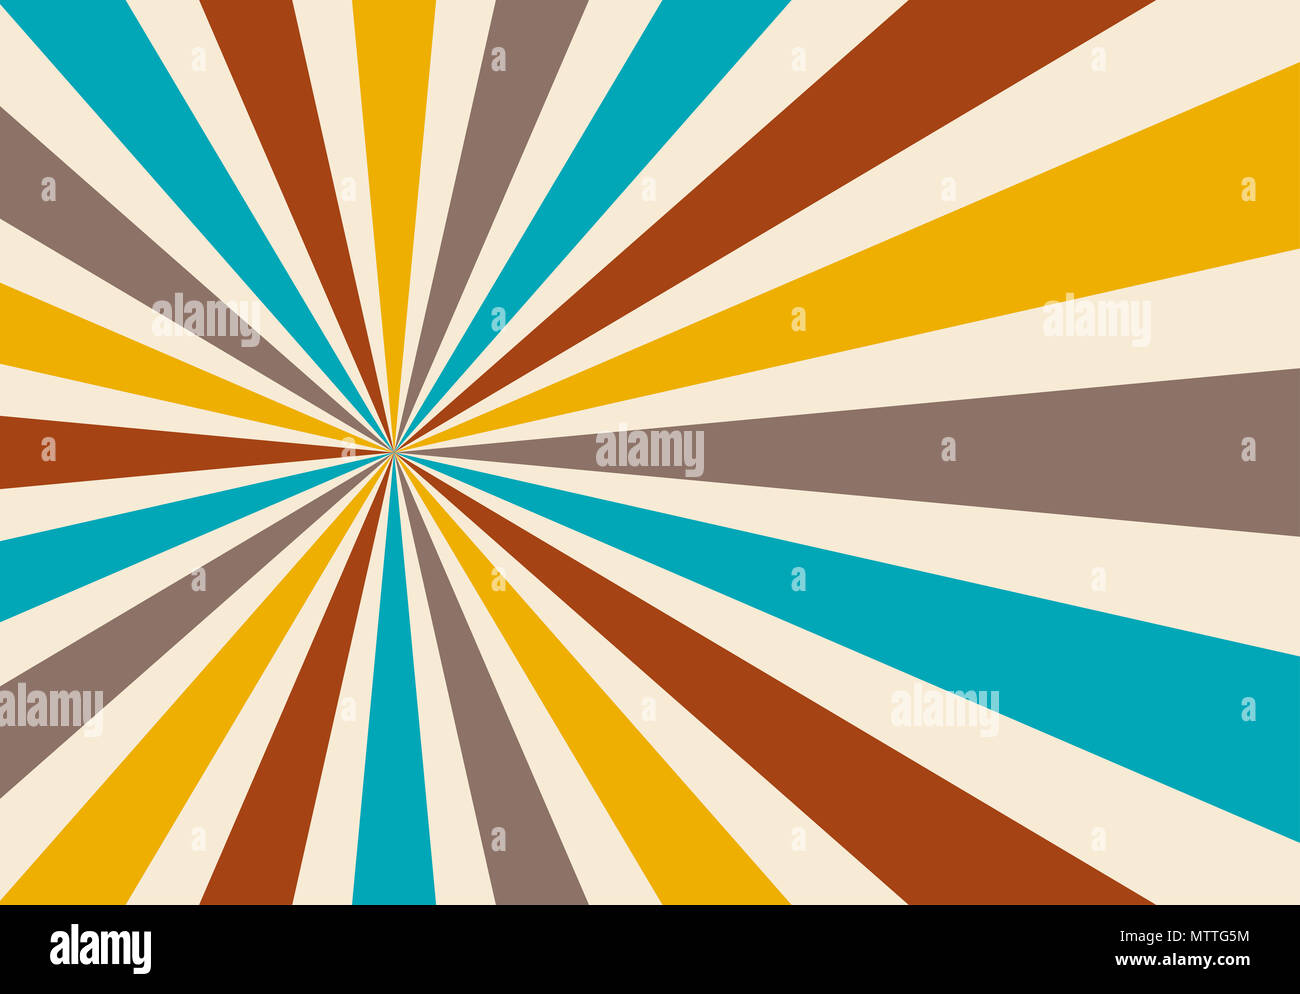 82fbd0dfcfcb starburst or sunburst background pattern with a vintage color palette of  blue yellow light gray beige and red in a radial striped design